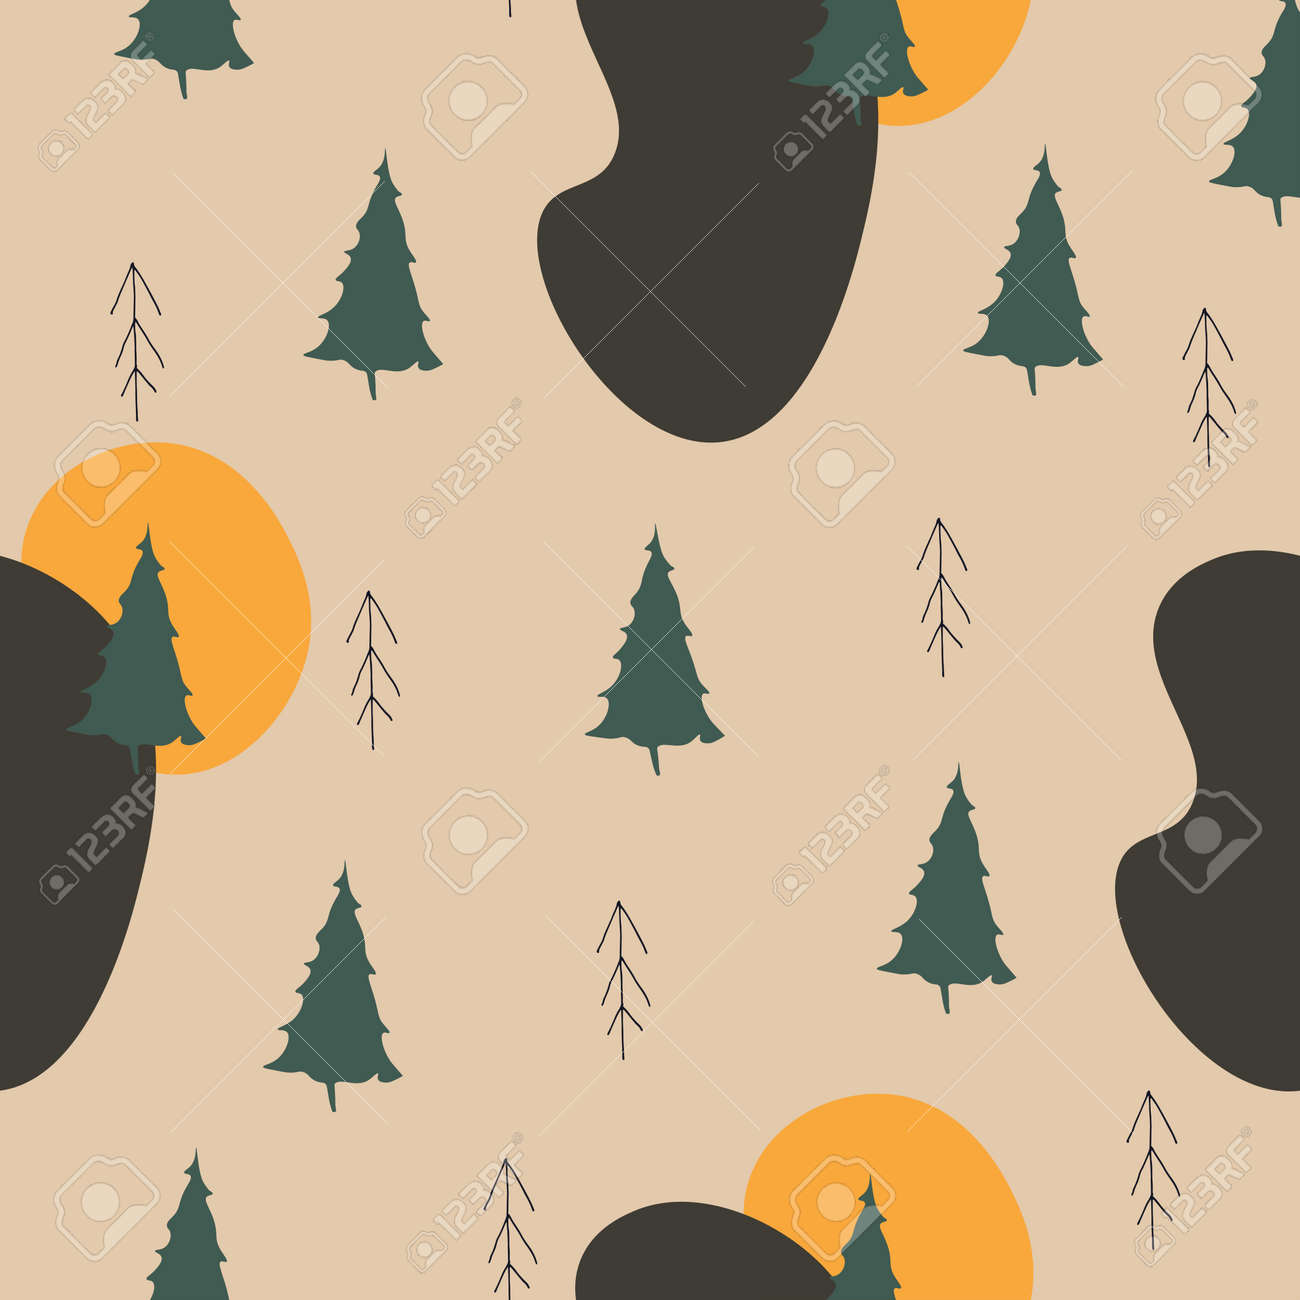 Cute forest vector pattern. Seamless design with firs hand-drawn trees in scandinavian style and spots. Children's illustrations for clothing, textiles, wrapping paper, covers. - 165591332